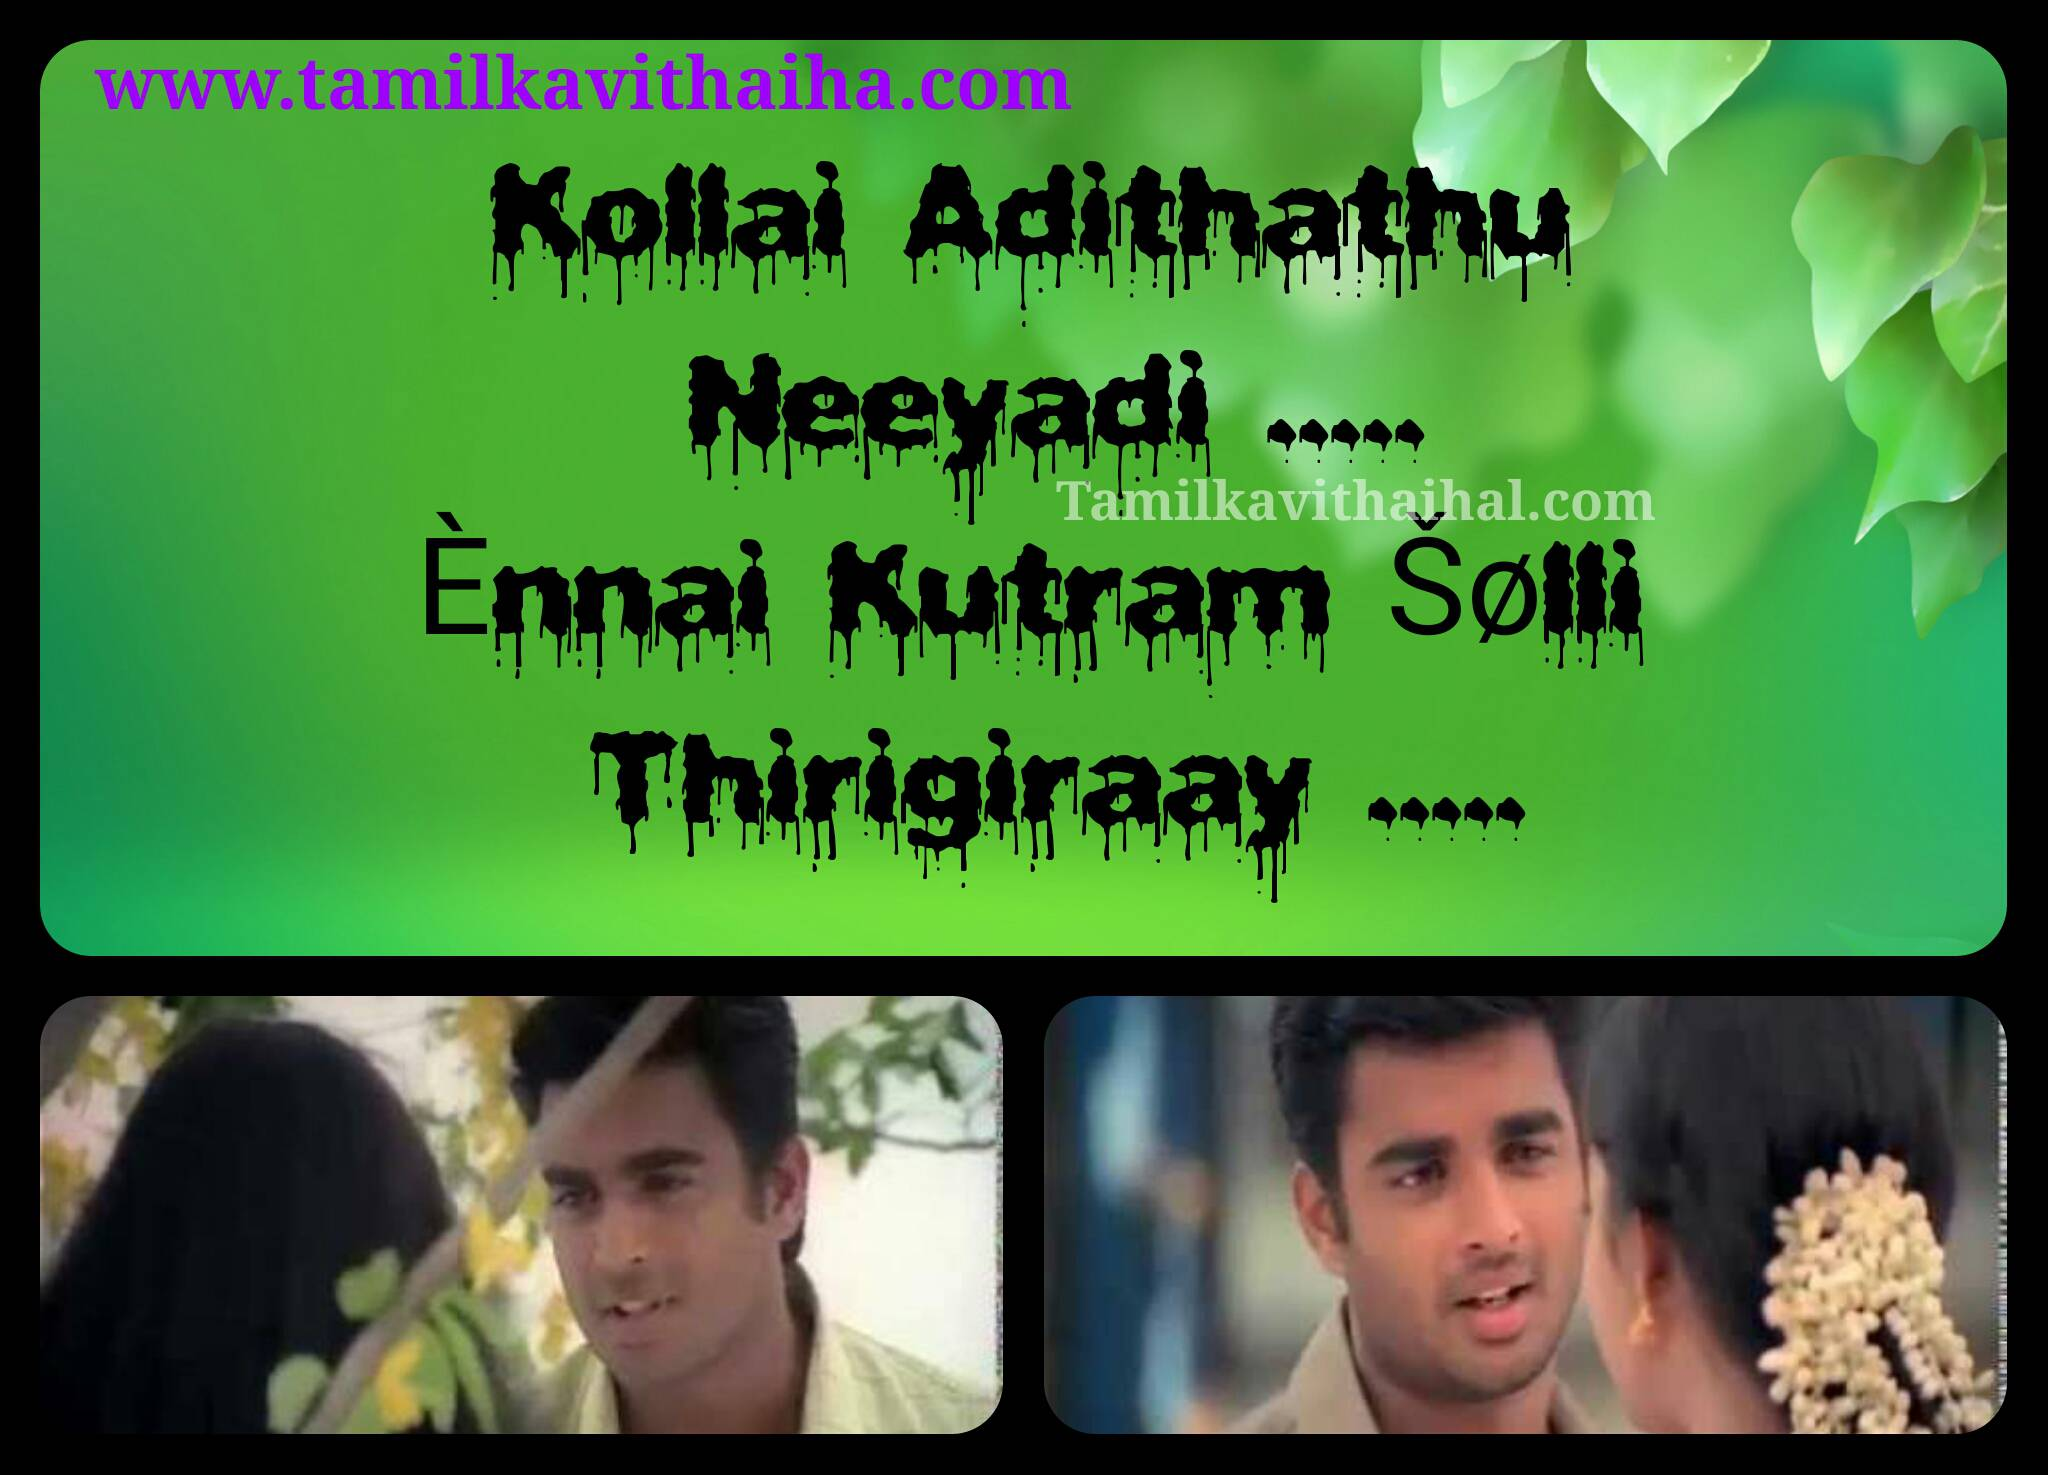 Best madhavan meera jasmine love song quotes minsaaram en meethu in english whatsapp tamil status wallpapper